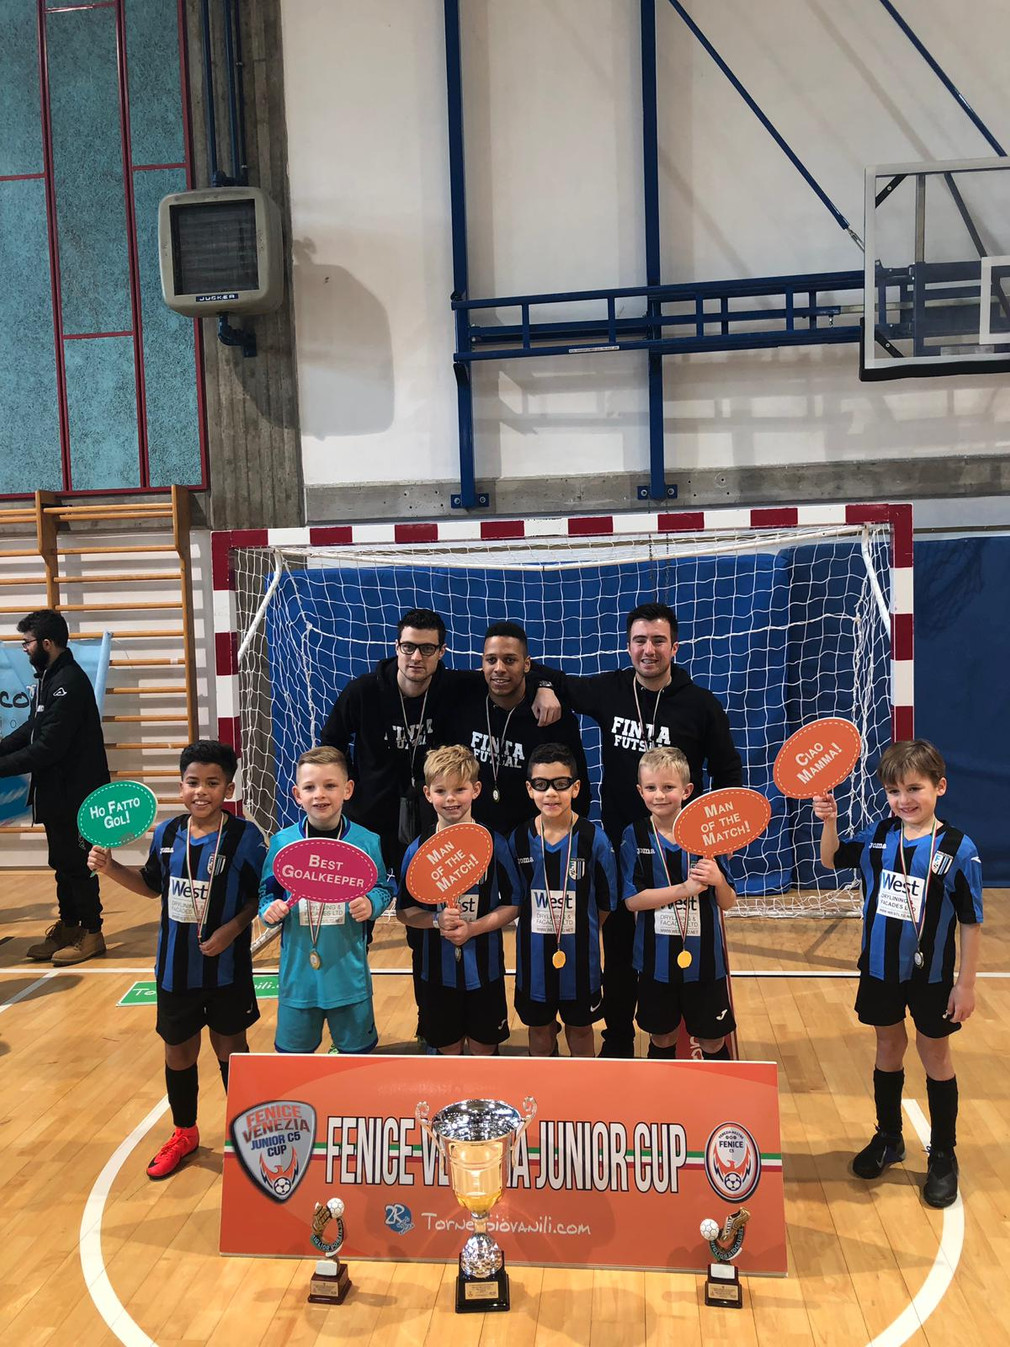 U9s Champions of the Fenice Junior Cup in Venice !